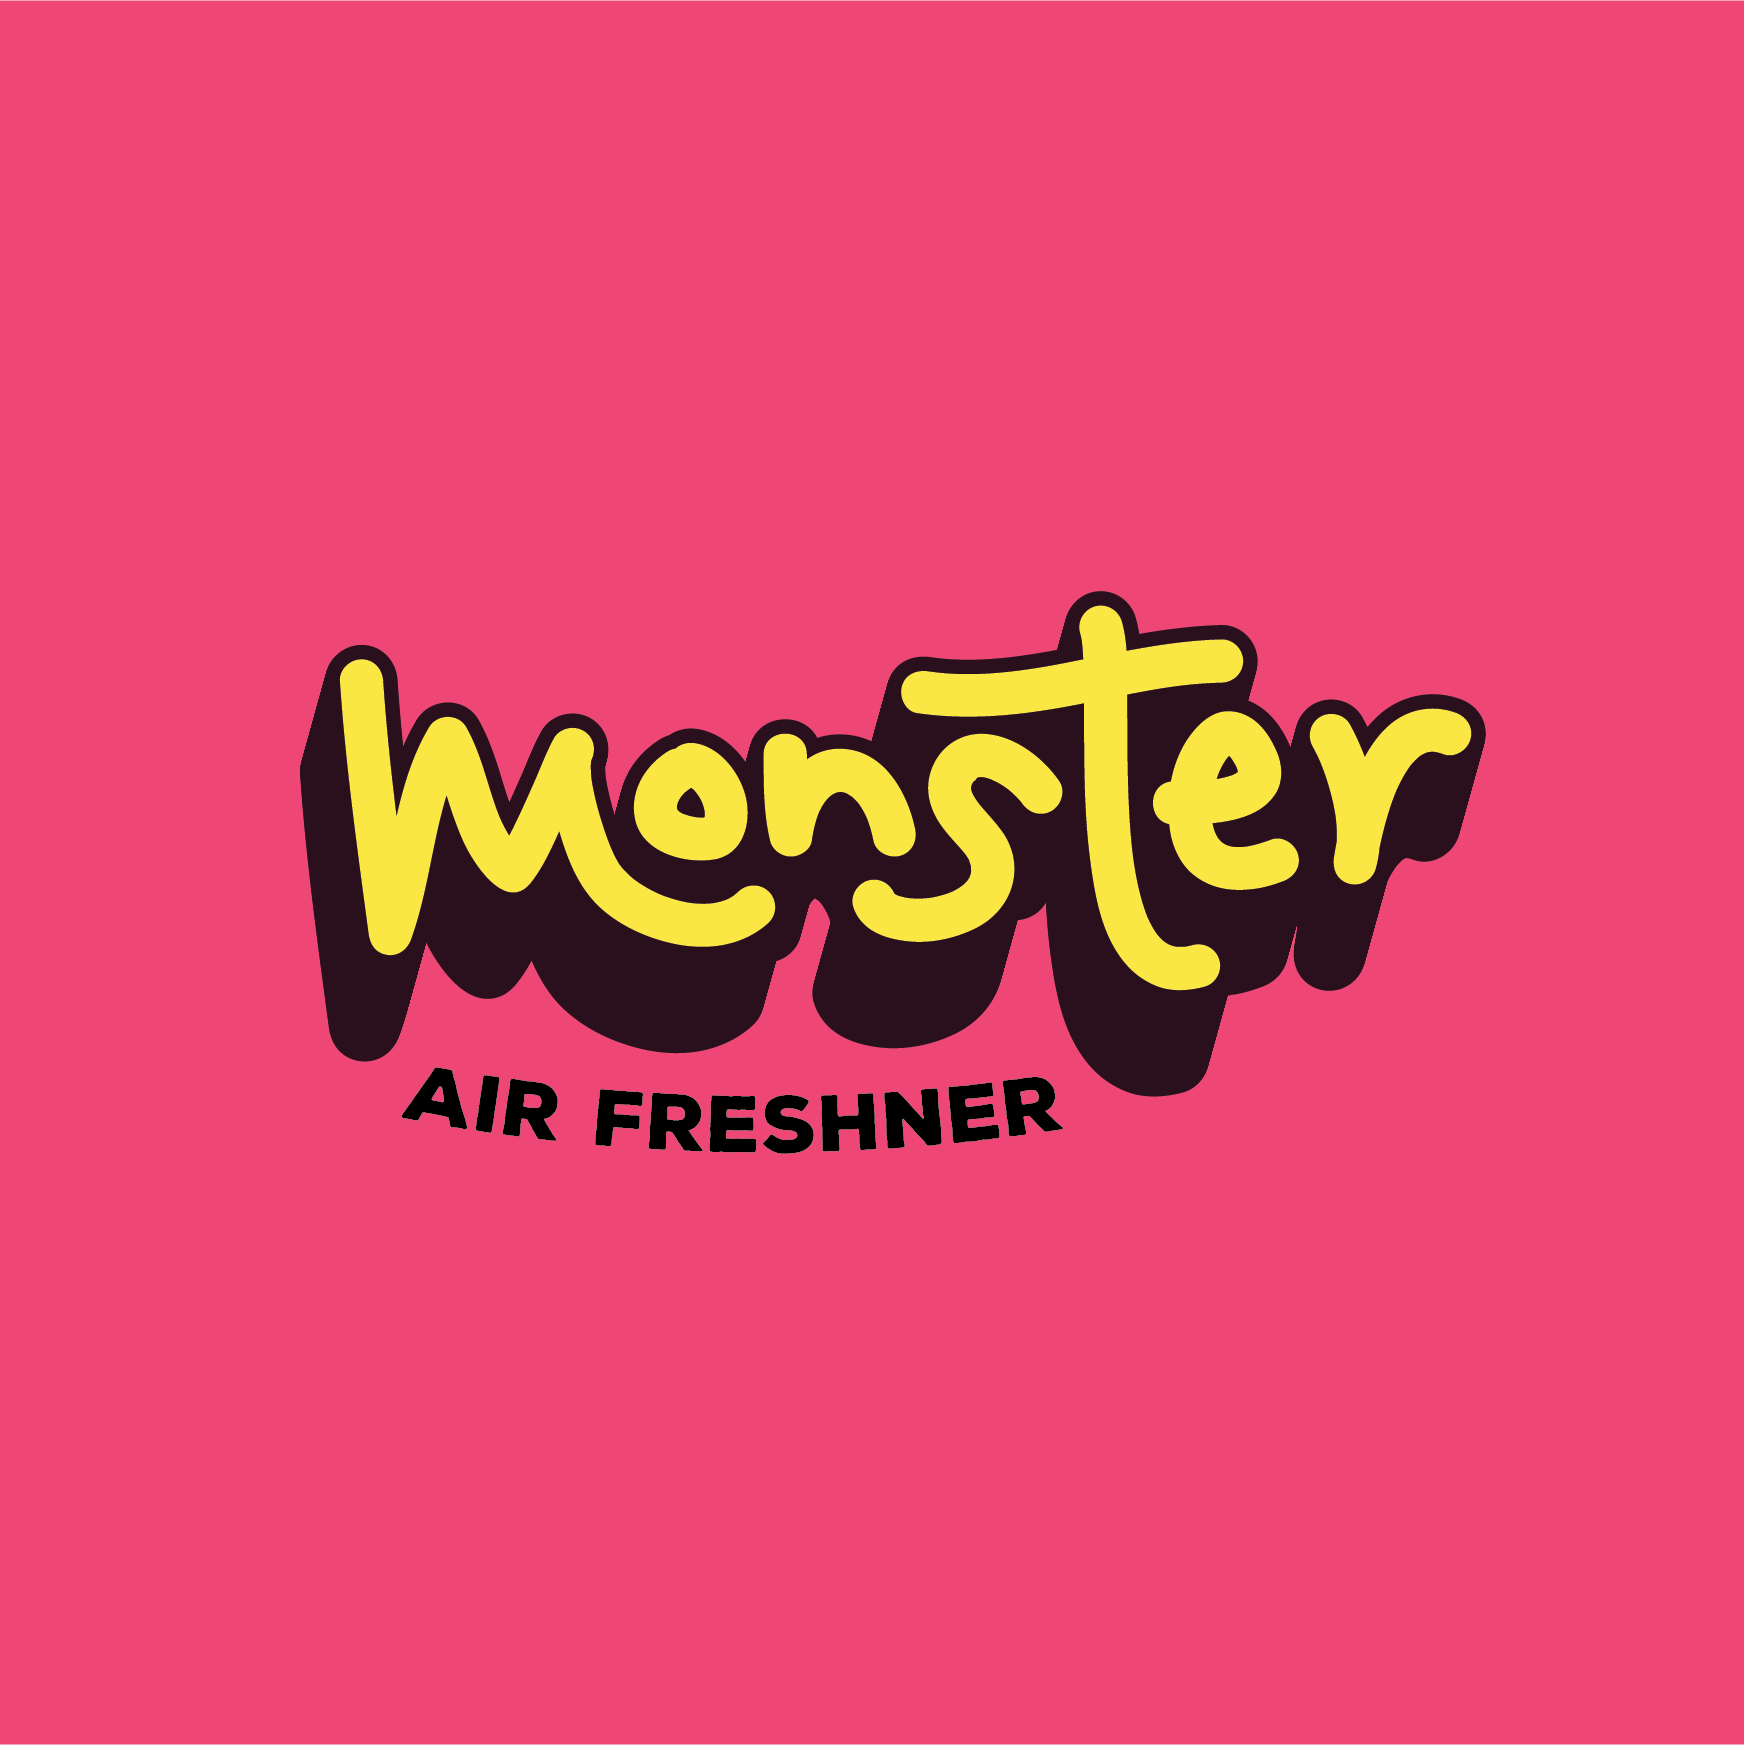 Monster Air Freshner